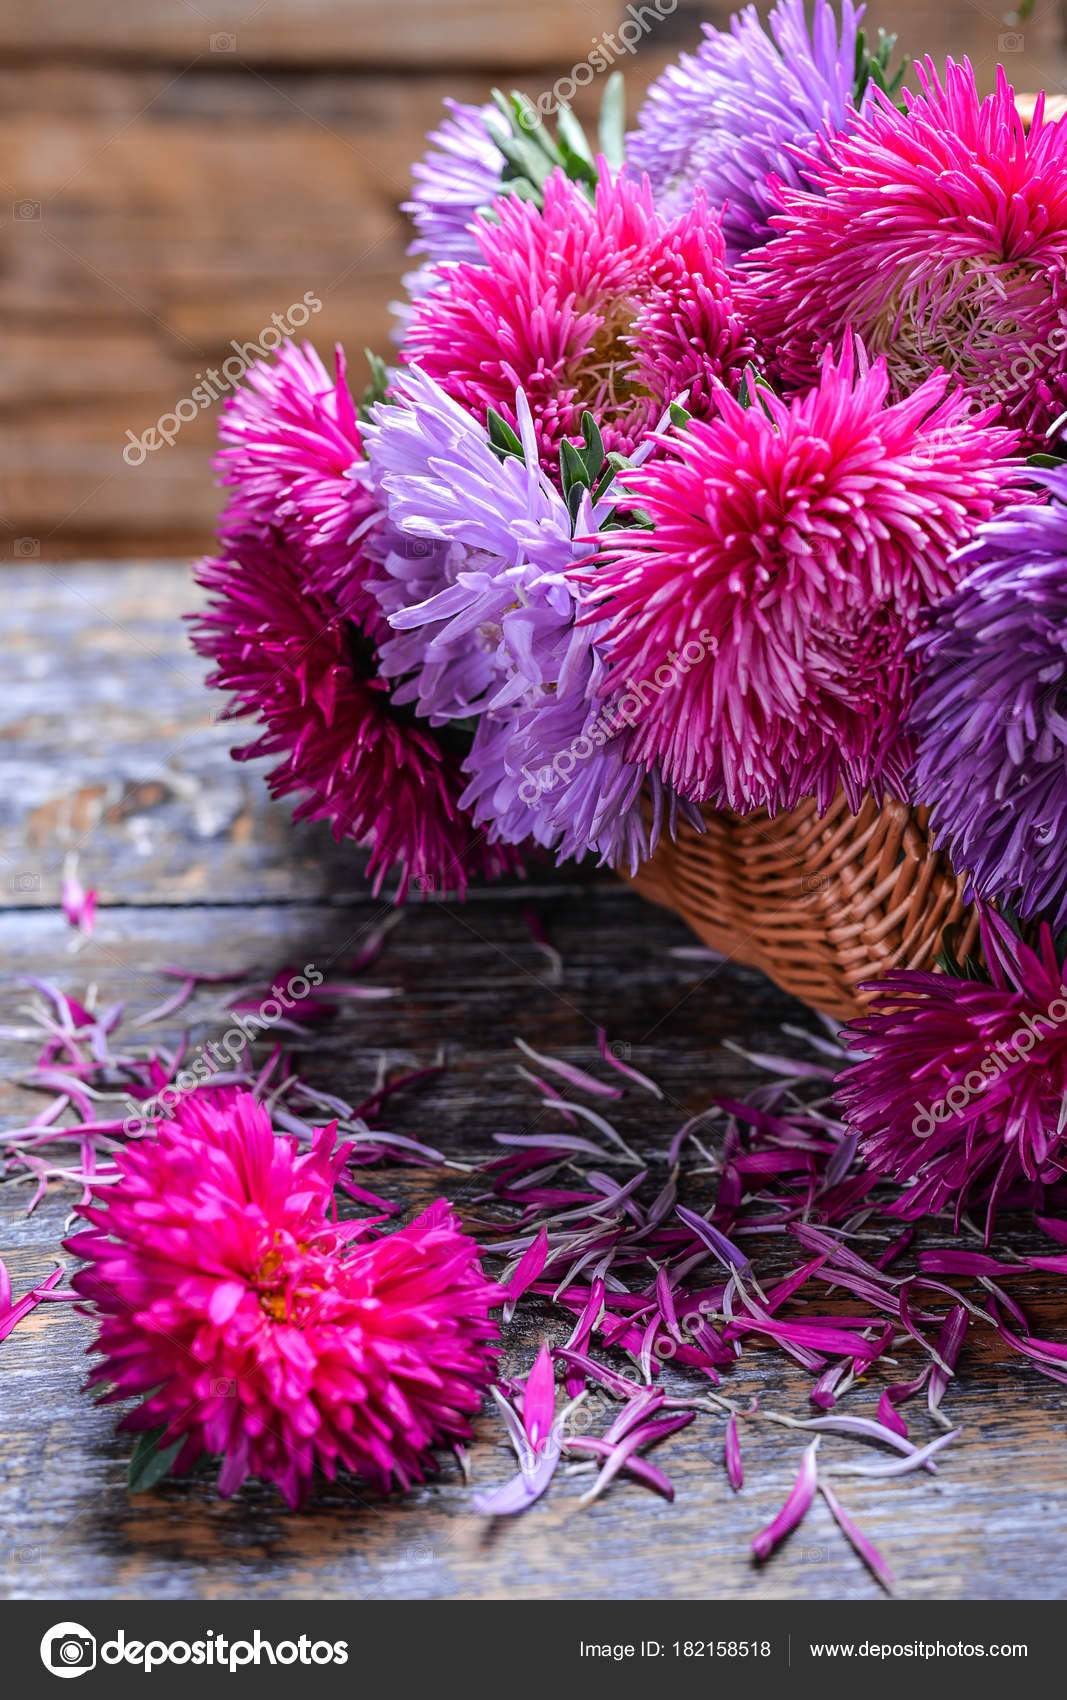 Aster flowers bouquet basket purple red pink white wooden background aster flowers bouquet at the basket purple red pink white on a wooden background selective focus photo by nataliiagl izmirmasajfo